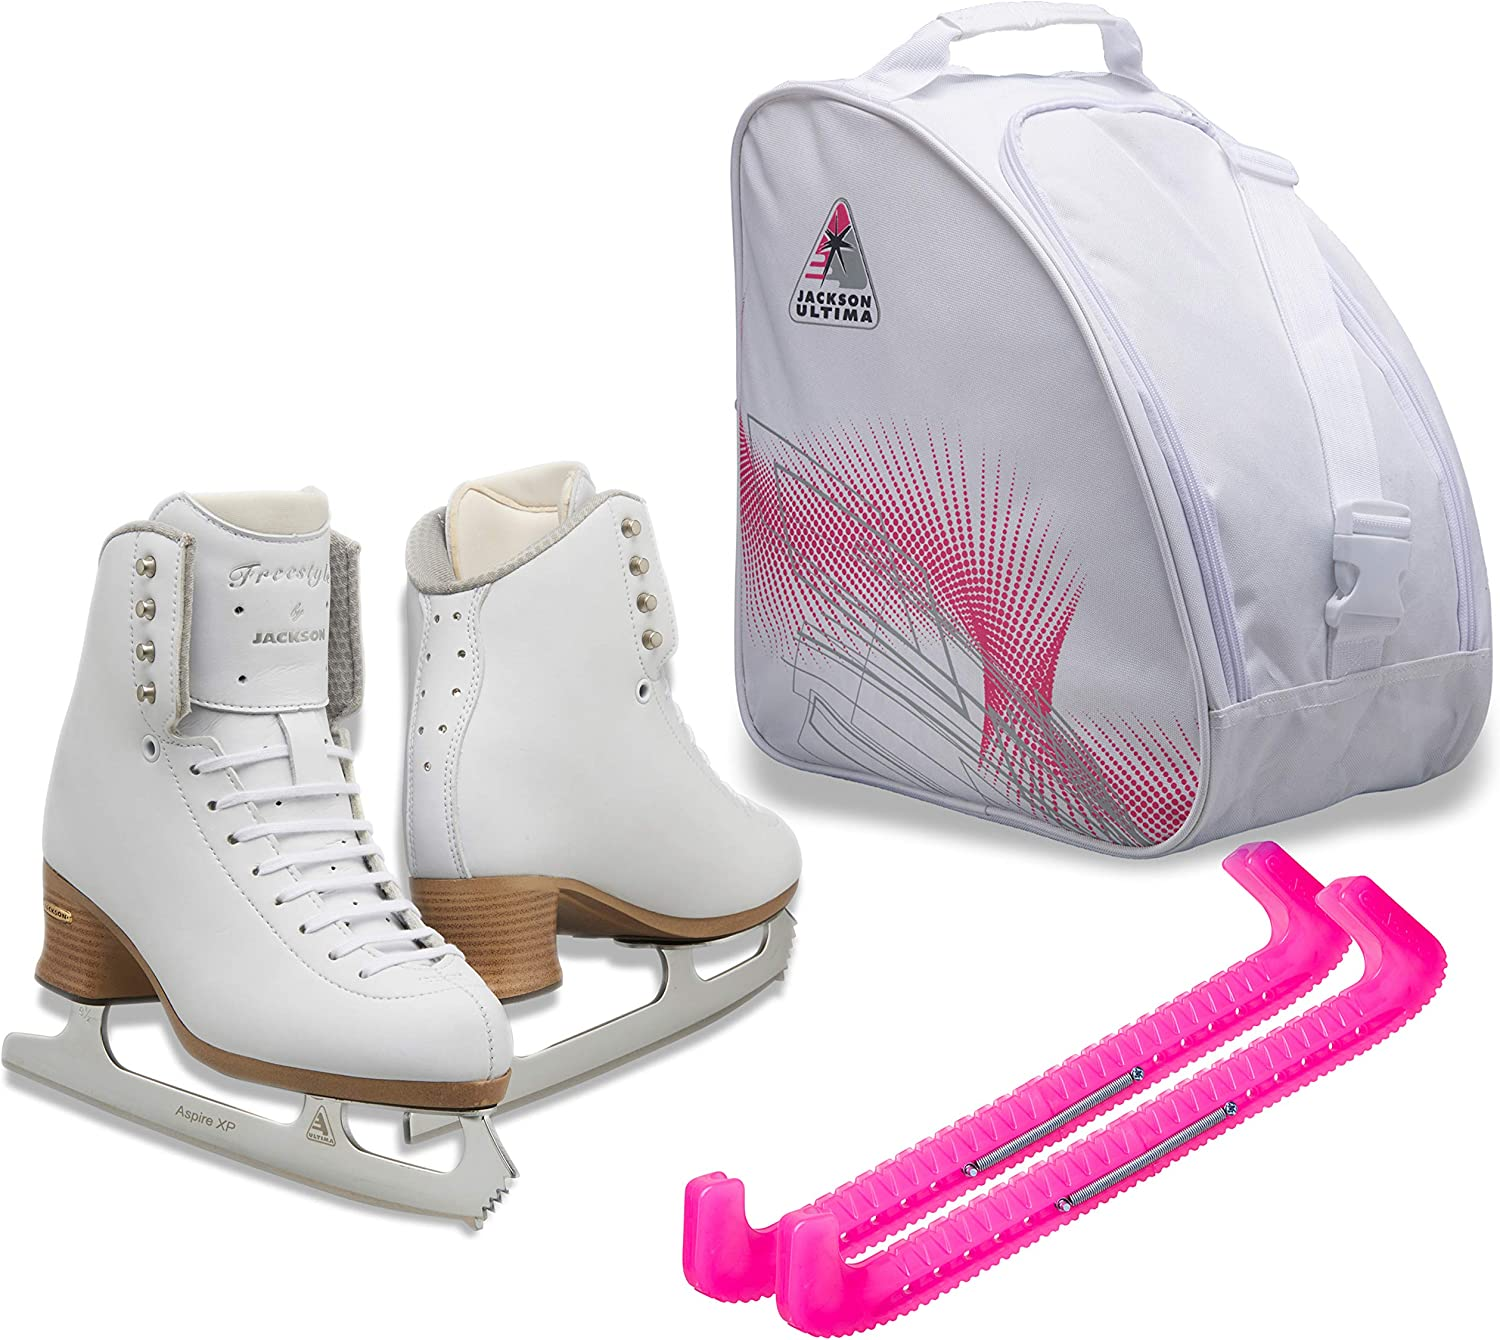 Jackson Ultima Figure Ice Skates for and Bundle Max 80% OFF Fort Worth Mall with Girls Women